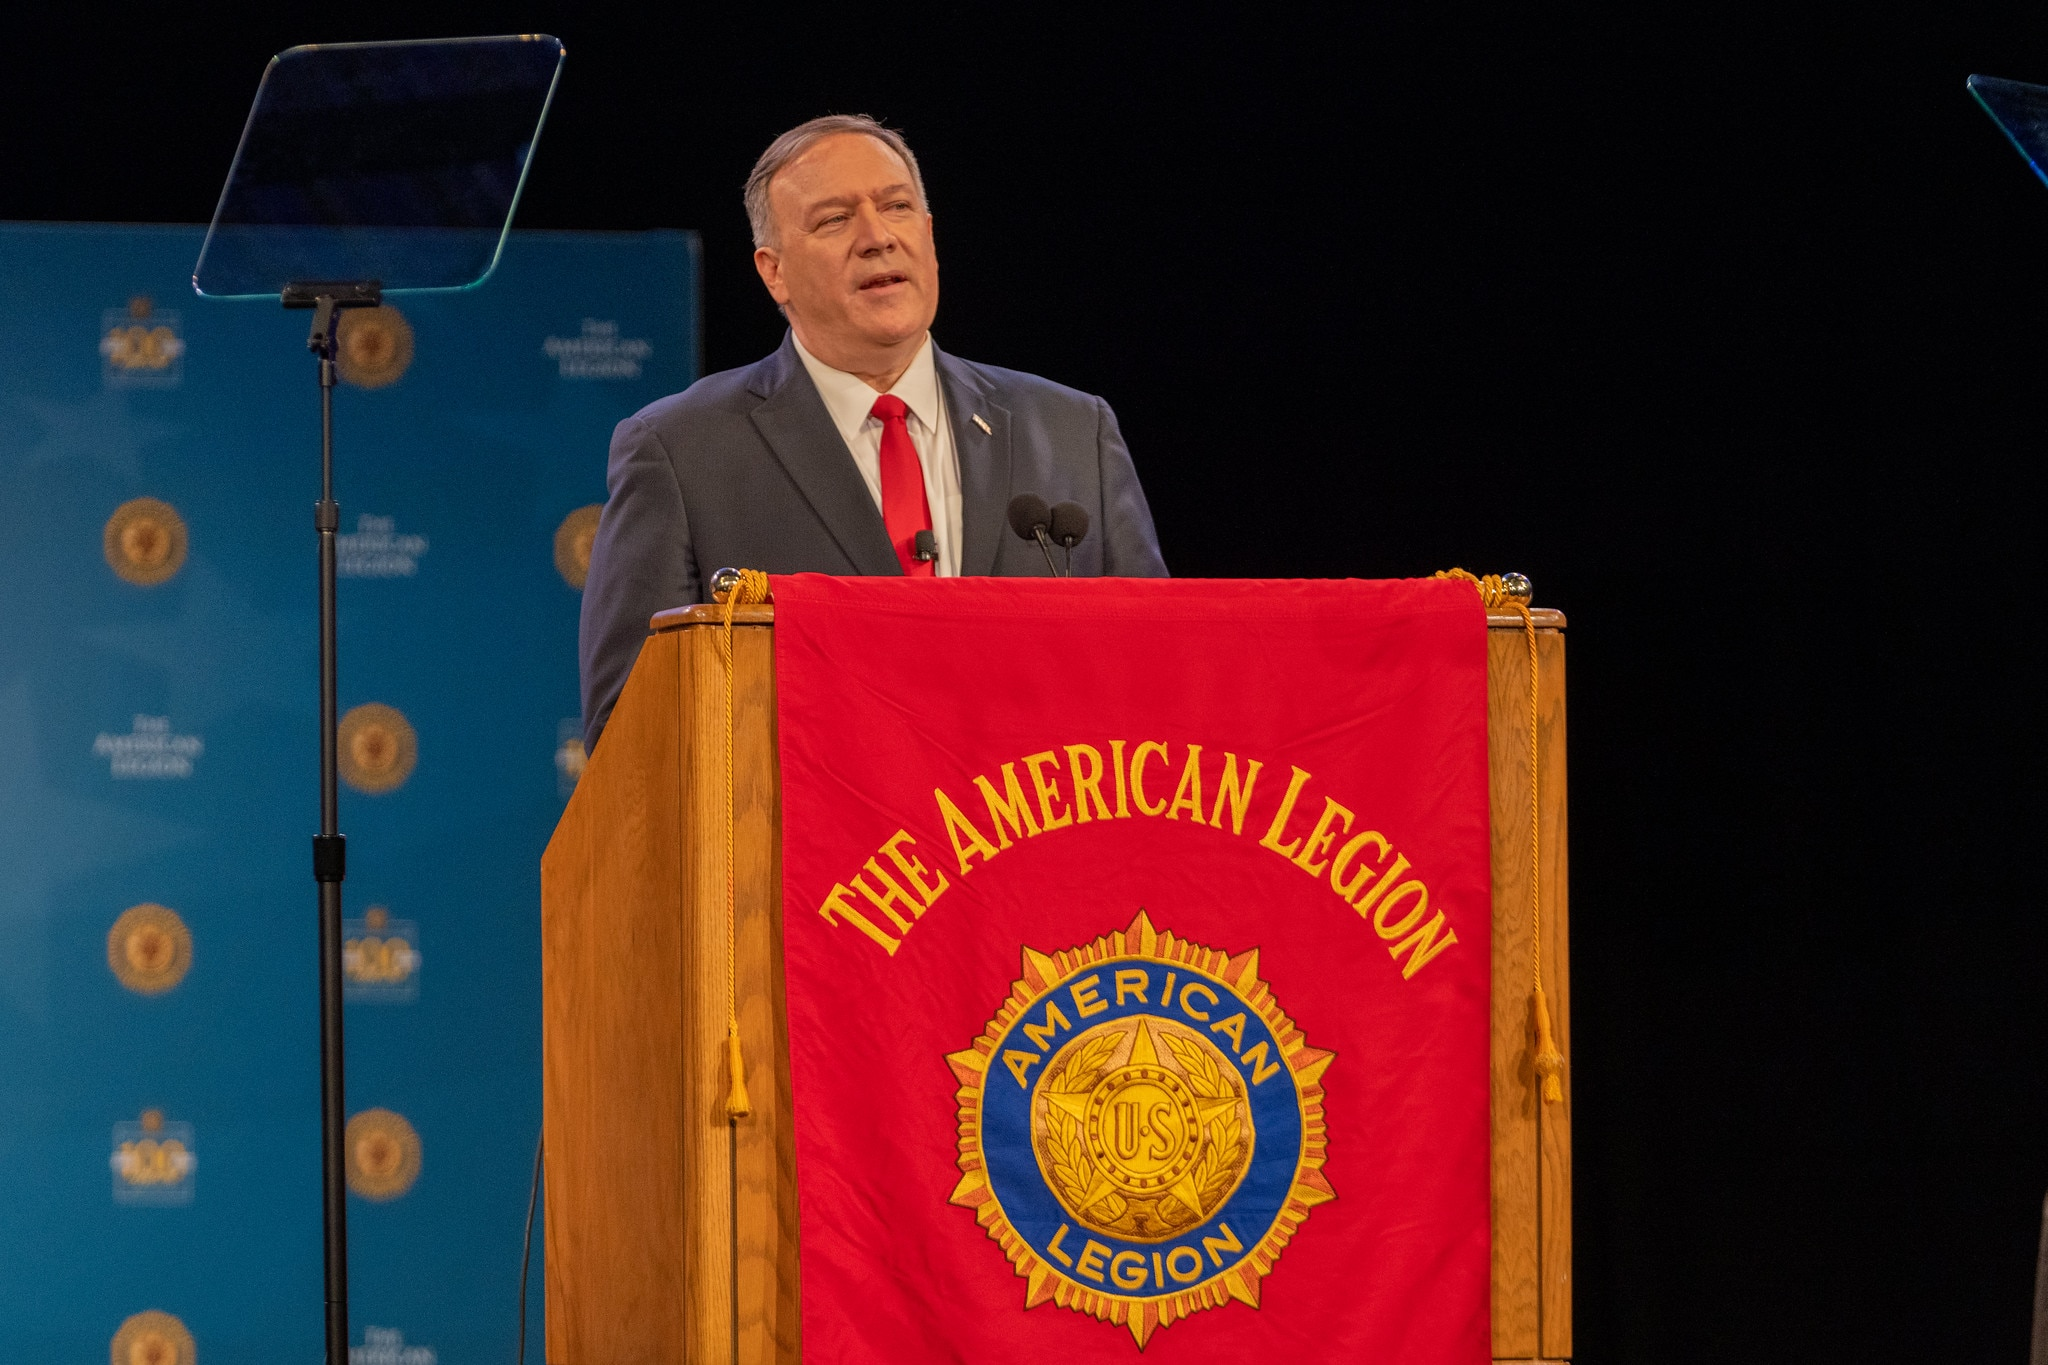 U.S. Secretary of State Michael R. Pompeo delivers remarks on 'Celebrating Americanism in Our Foreign Policy' at the 101st National Convention of the American Legion, in Indianapolis, Indiana on August 27, 2019. [State Department photo by Ron Przysucha/ Public Domain]